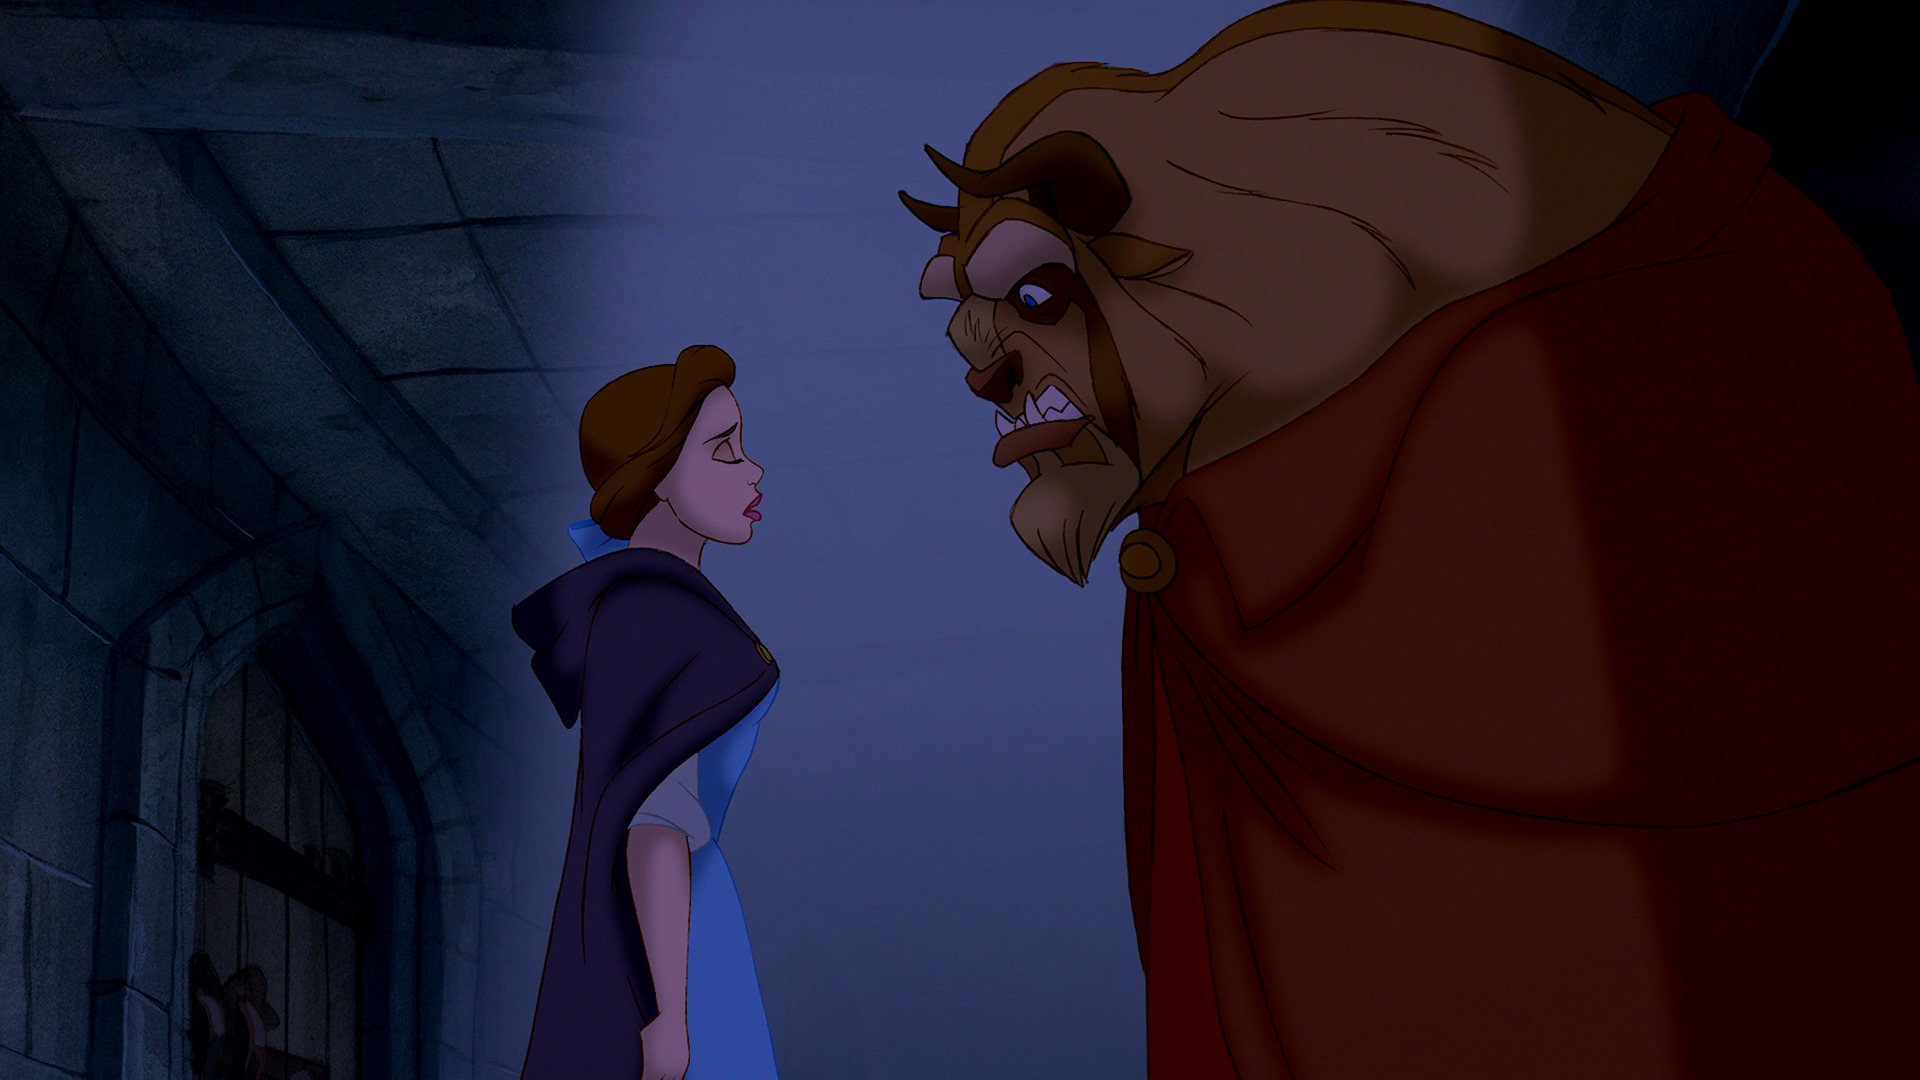 Belle Promised The Beast To Stay In Castle